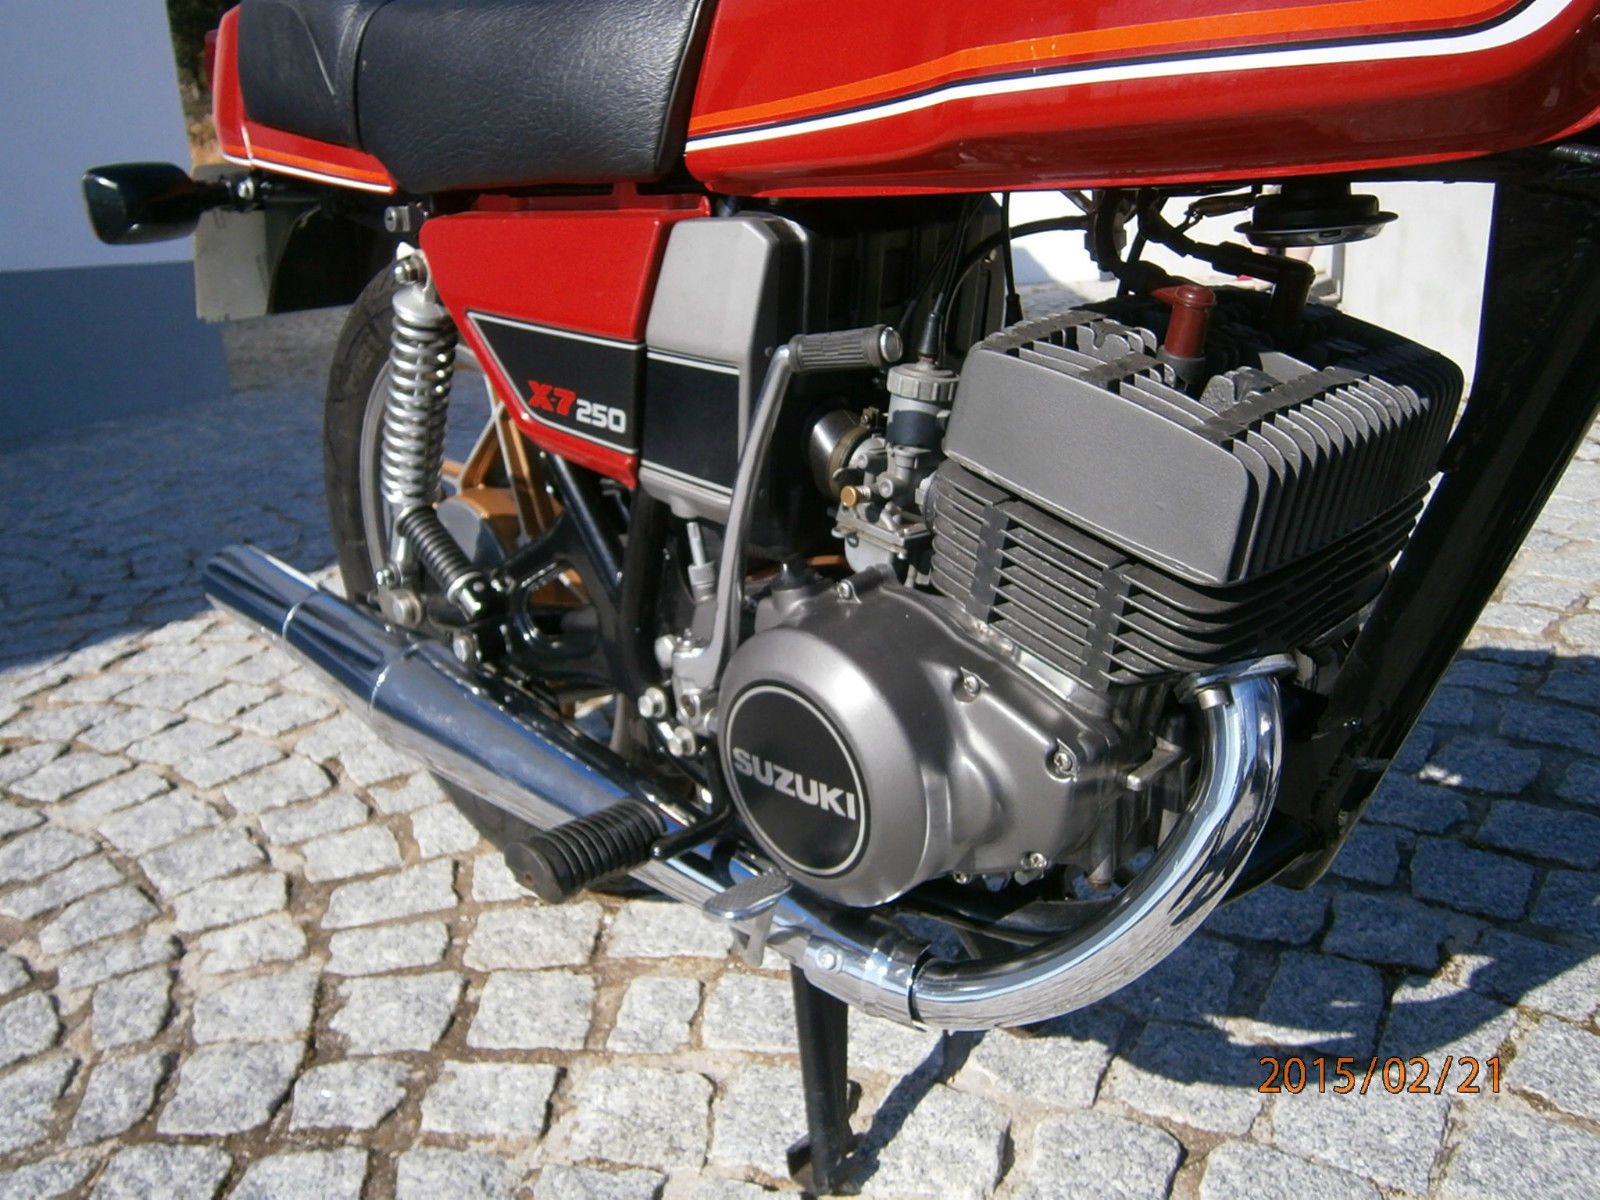 Suzuki X7 - 1982 - Kick Start, Clutch Cover, Side Panel, 250X7 Badge, Motor and Transmission.